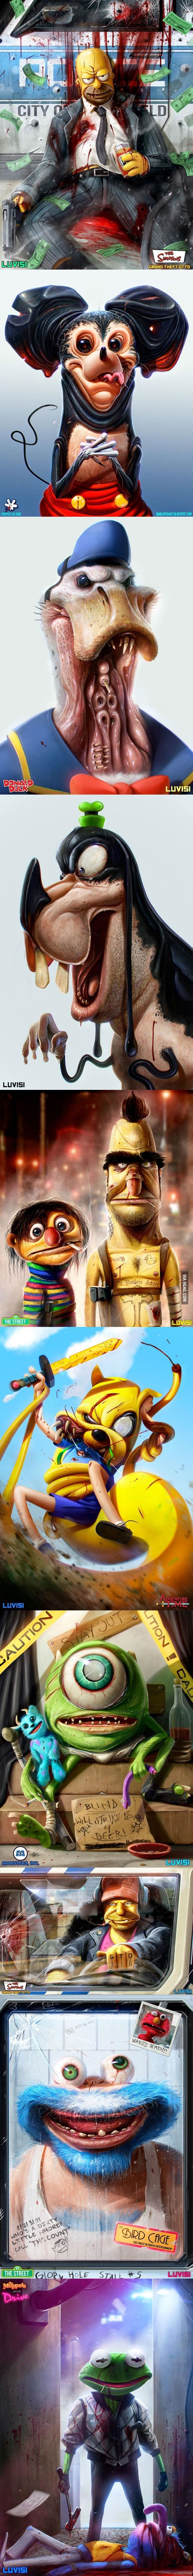 Childhood Characters as Criminals: